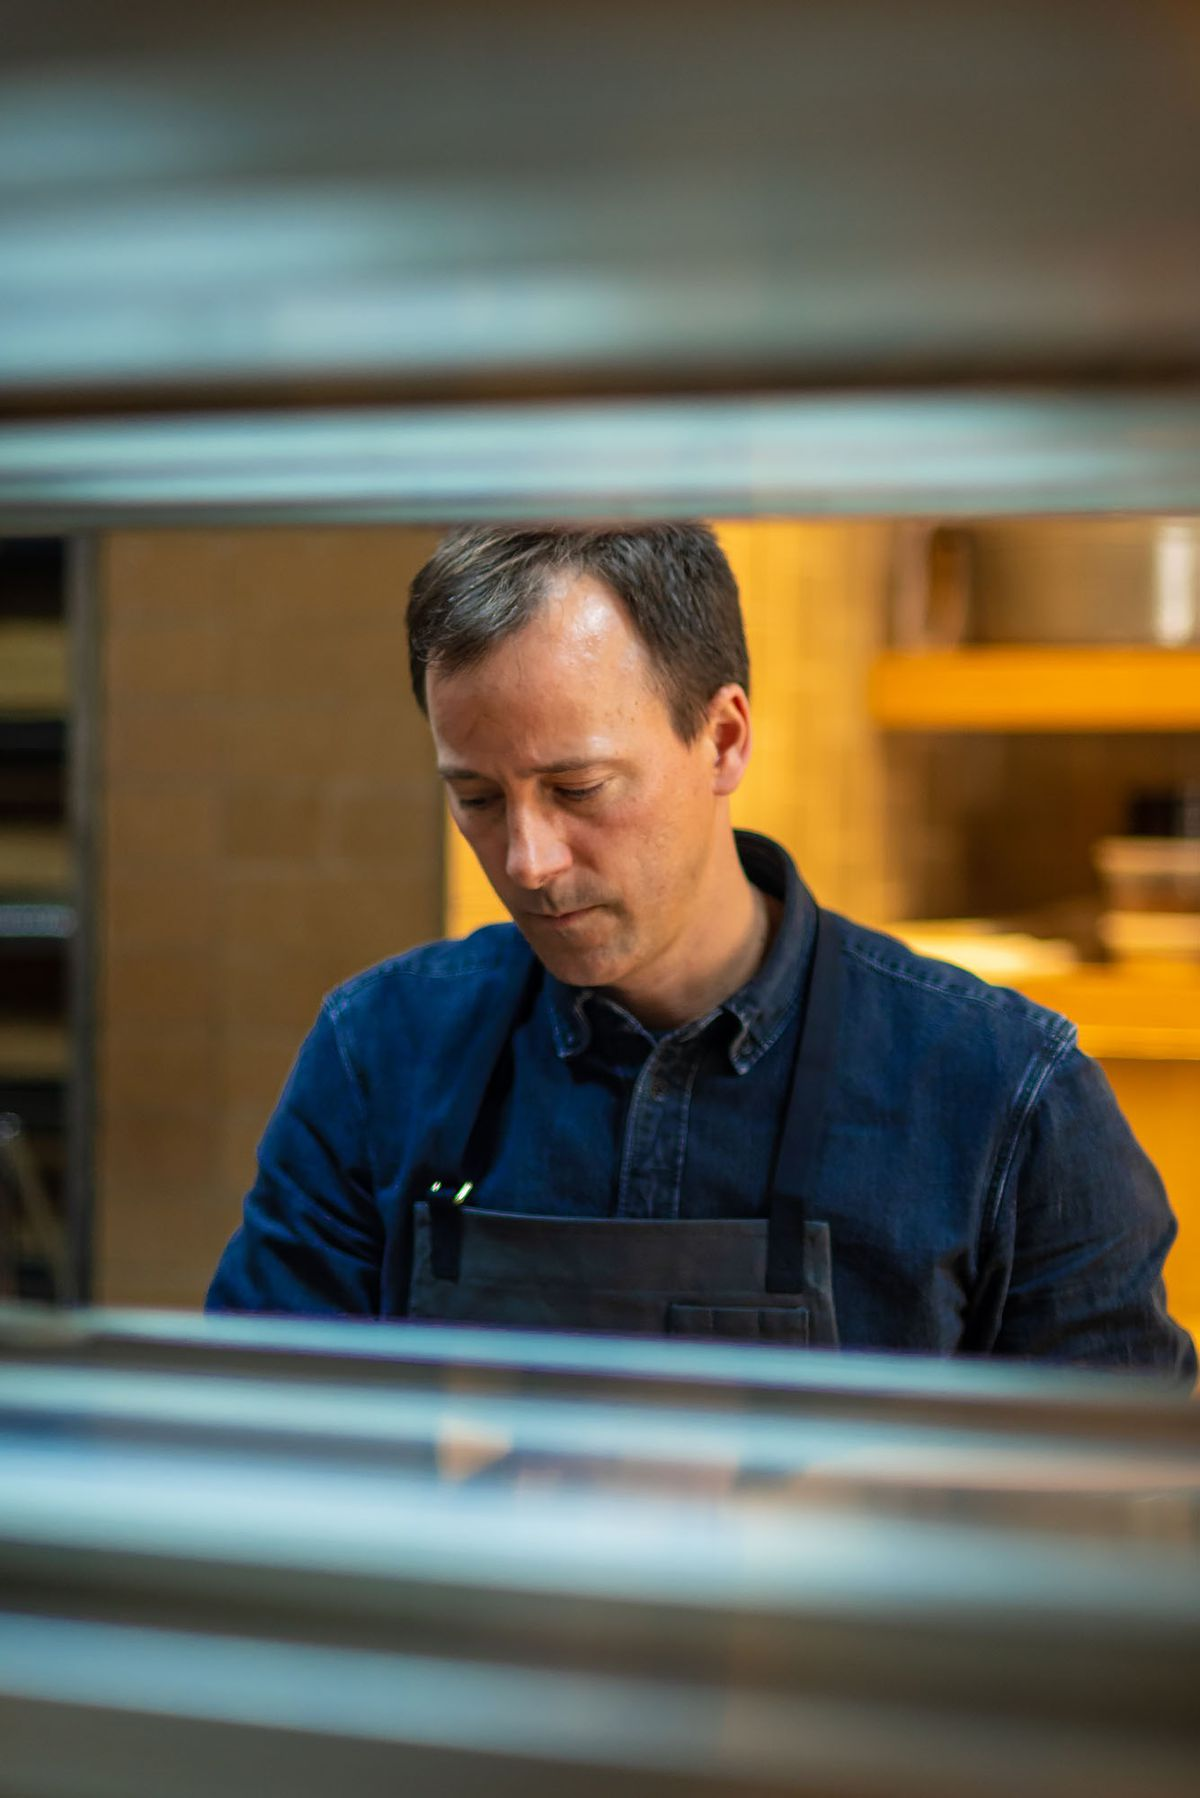 Eric Bost, chef, framed with stainless steel kitchen equipment at Auburn restaurant in LA.